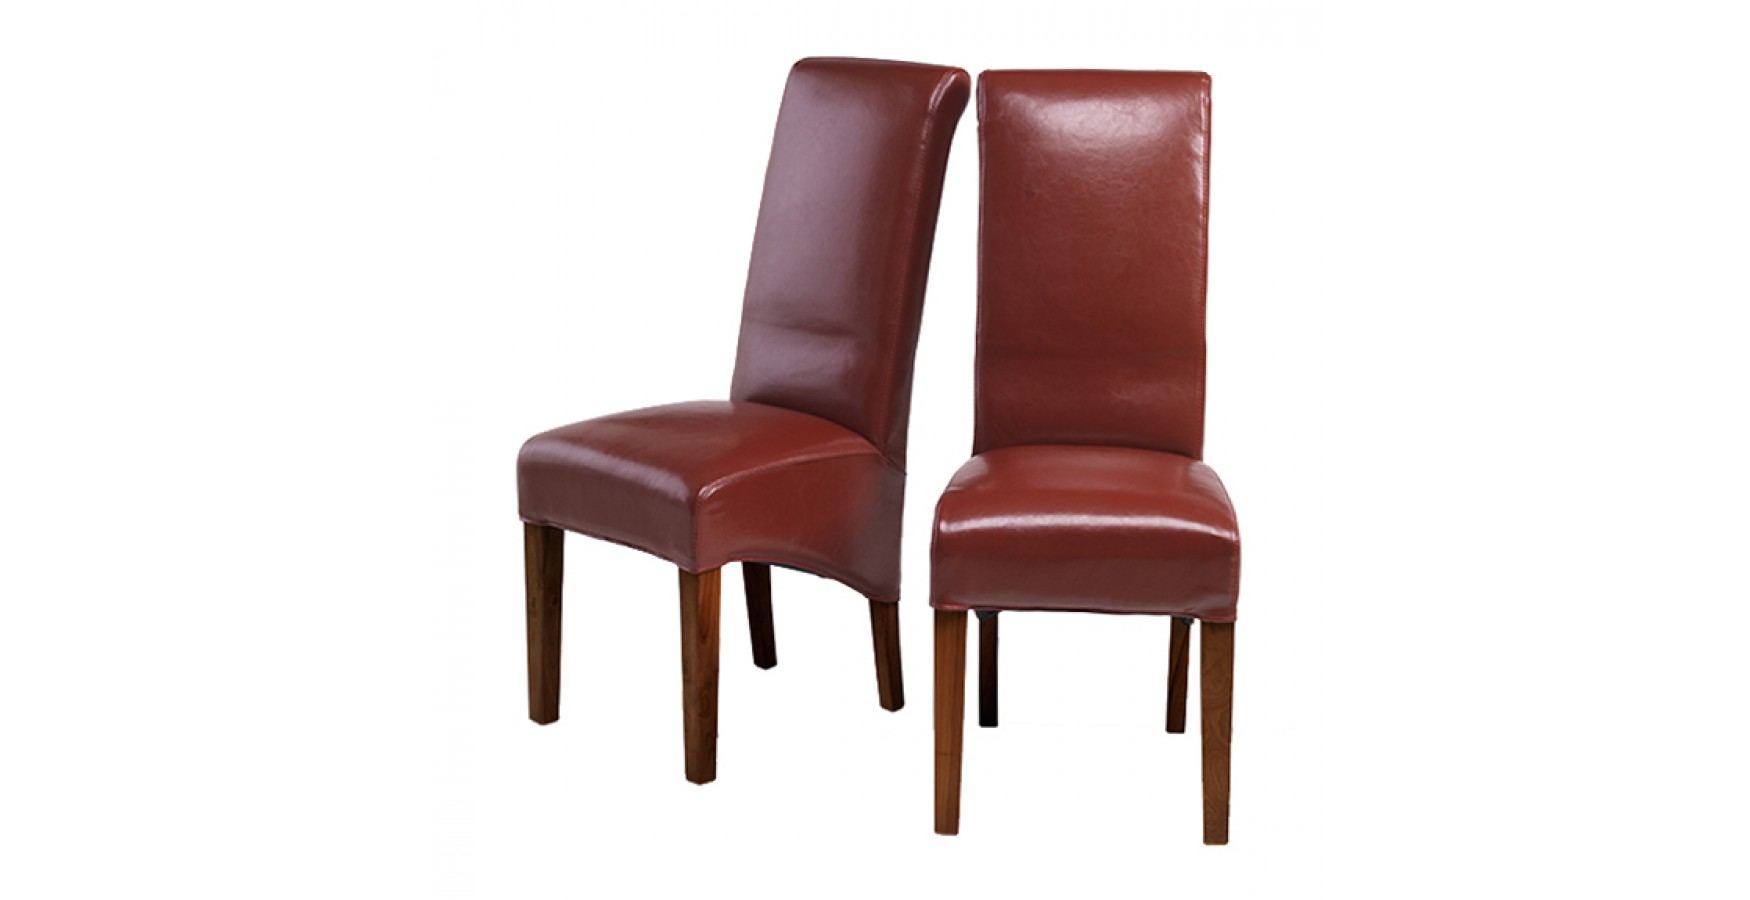 Cuba Bonded Leather Dining Chairs Red Pair Lifestyle Furniture UK